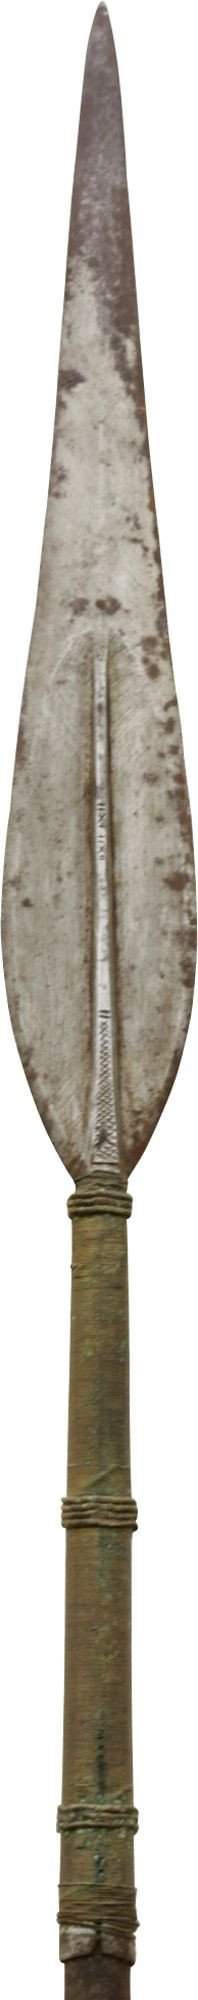 Fine Danakil (Afar) Infantry Spear C.1850-70 - Product